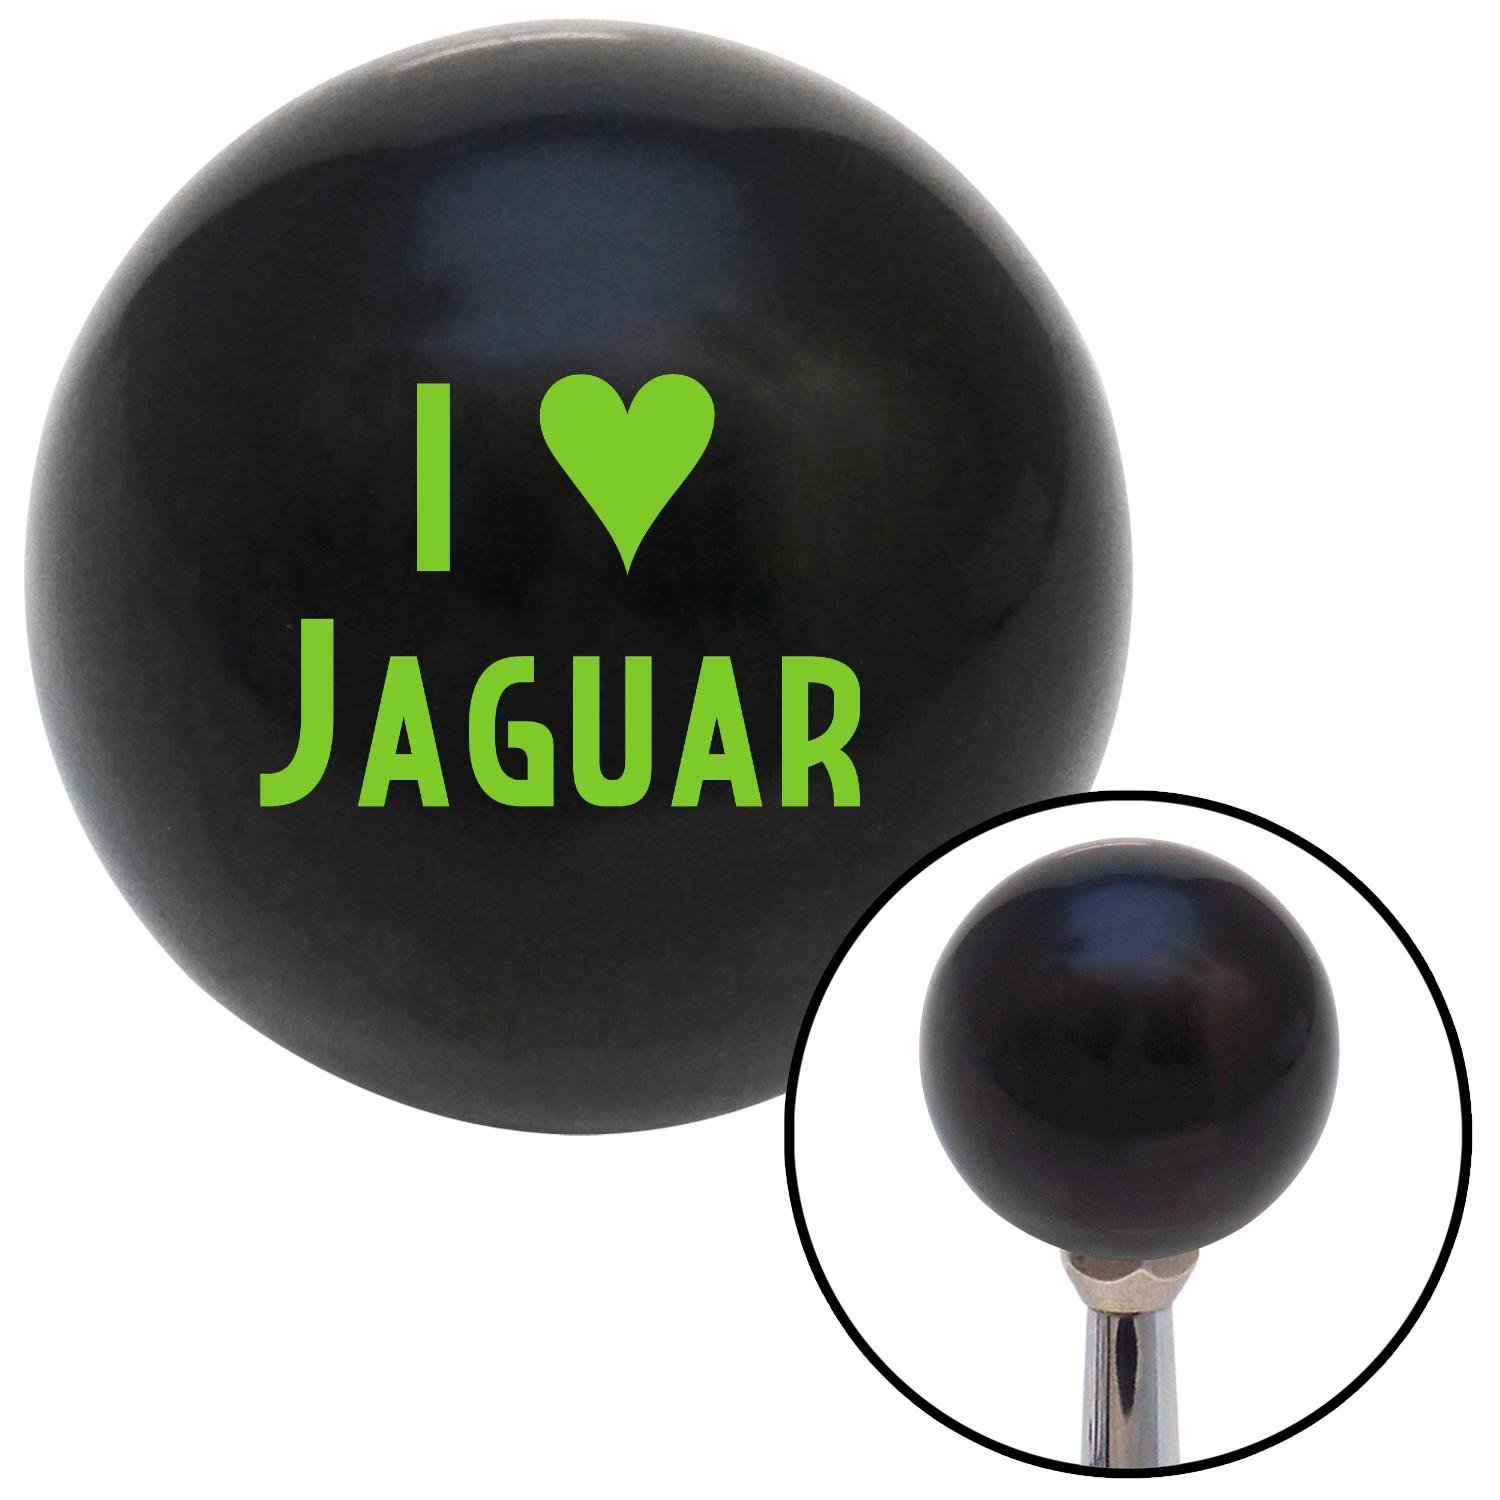 Green I 3 Jaguar American Shifter 105649 Black Shift Knob with M16 x 1.5 Insert